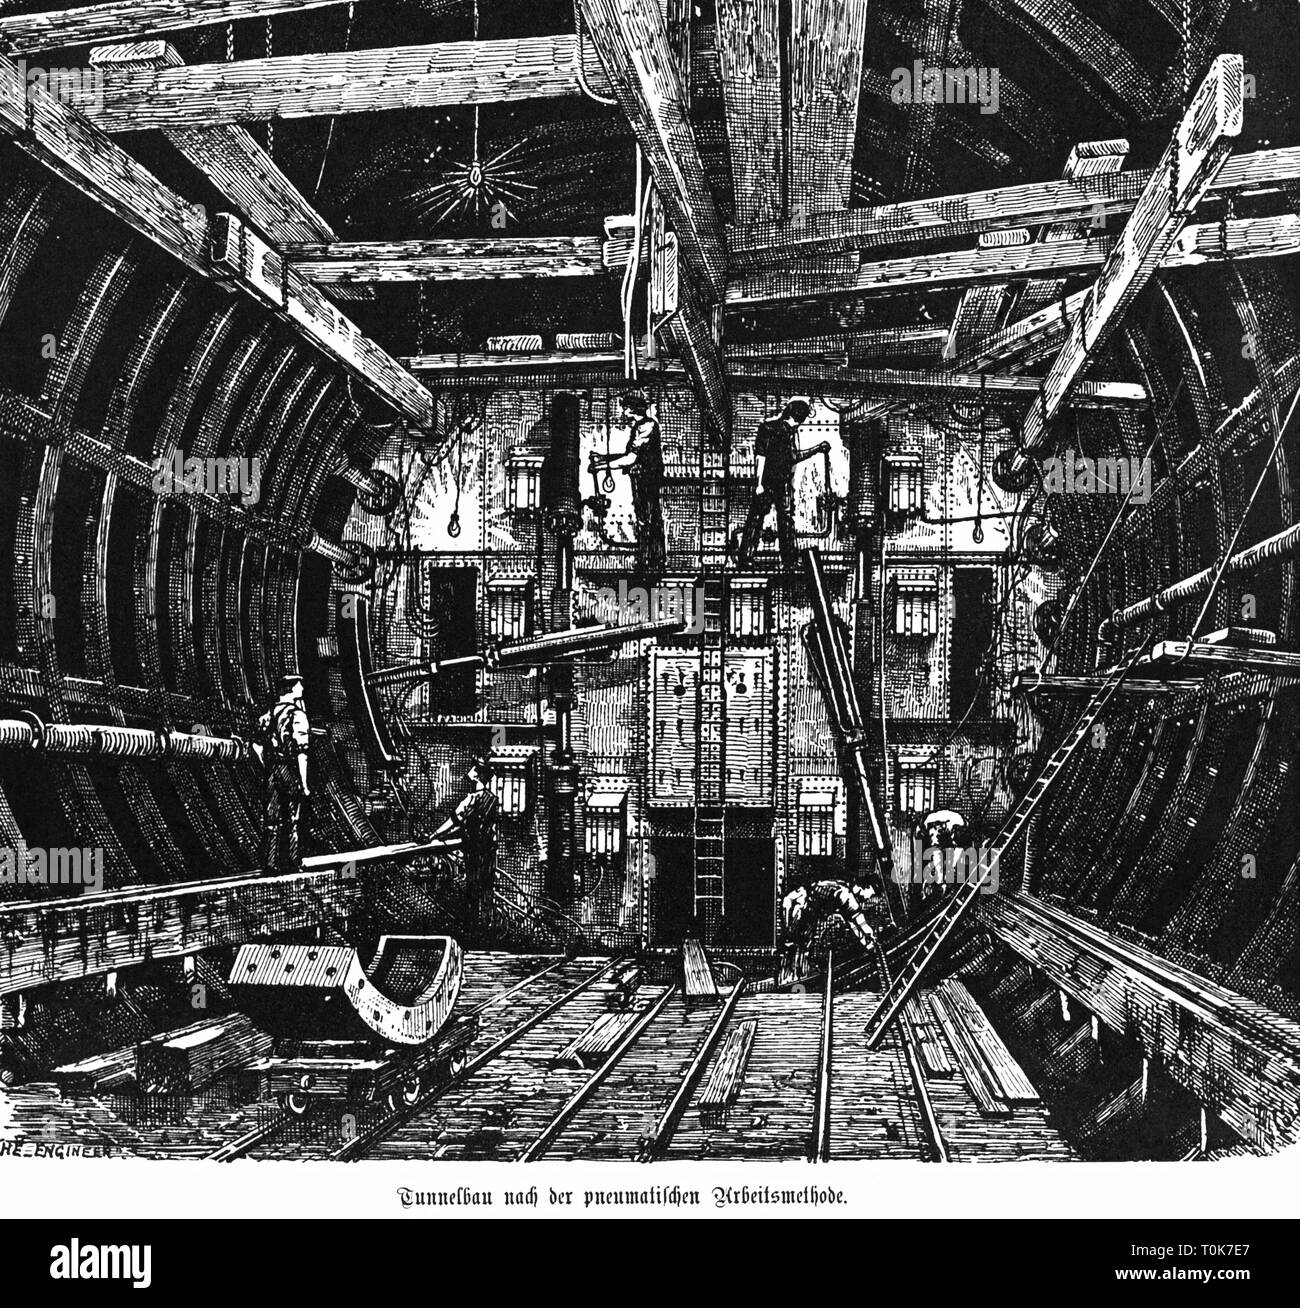 architecture, tunneling, pneumatic tunnelling shield, etching, late 19th century, Additional-Rights-Clearance-Info-Not-Available - Stock Image